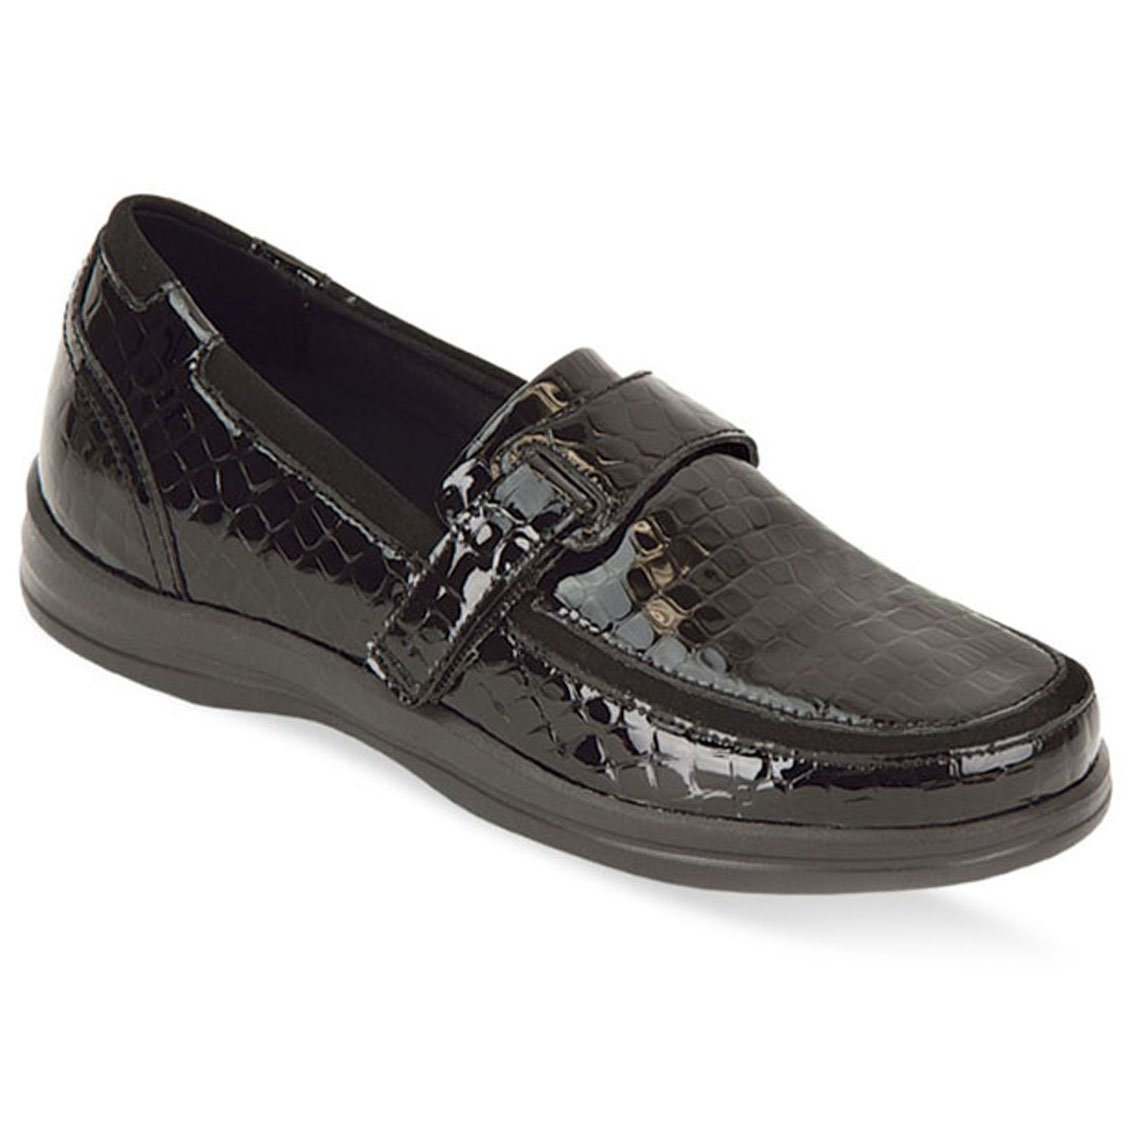 Apex Shoes A205W Evelyn Loafer Flat Black Croc 10